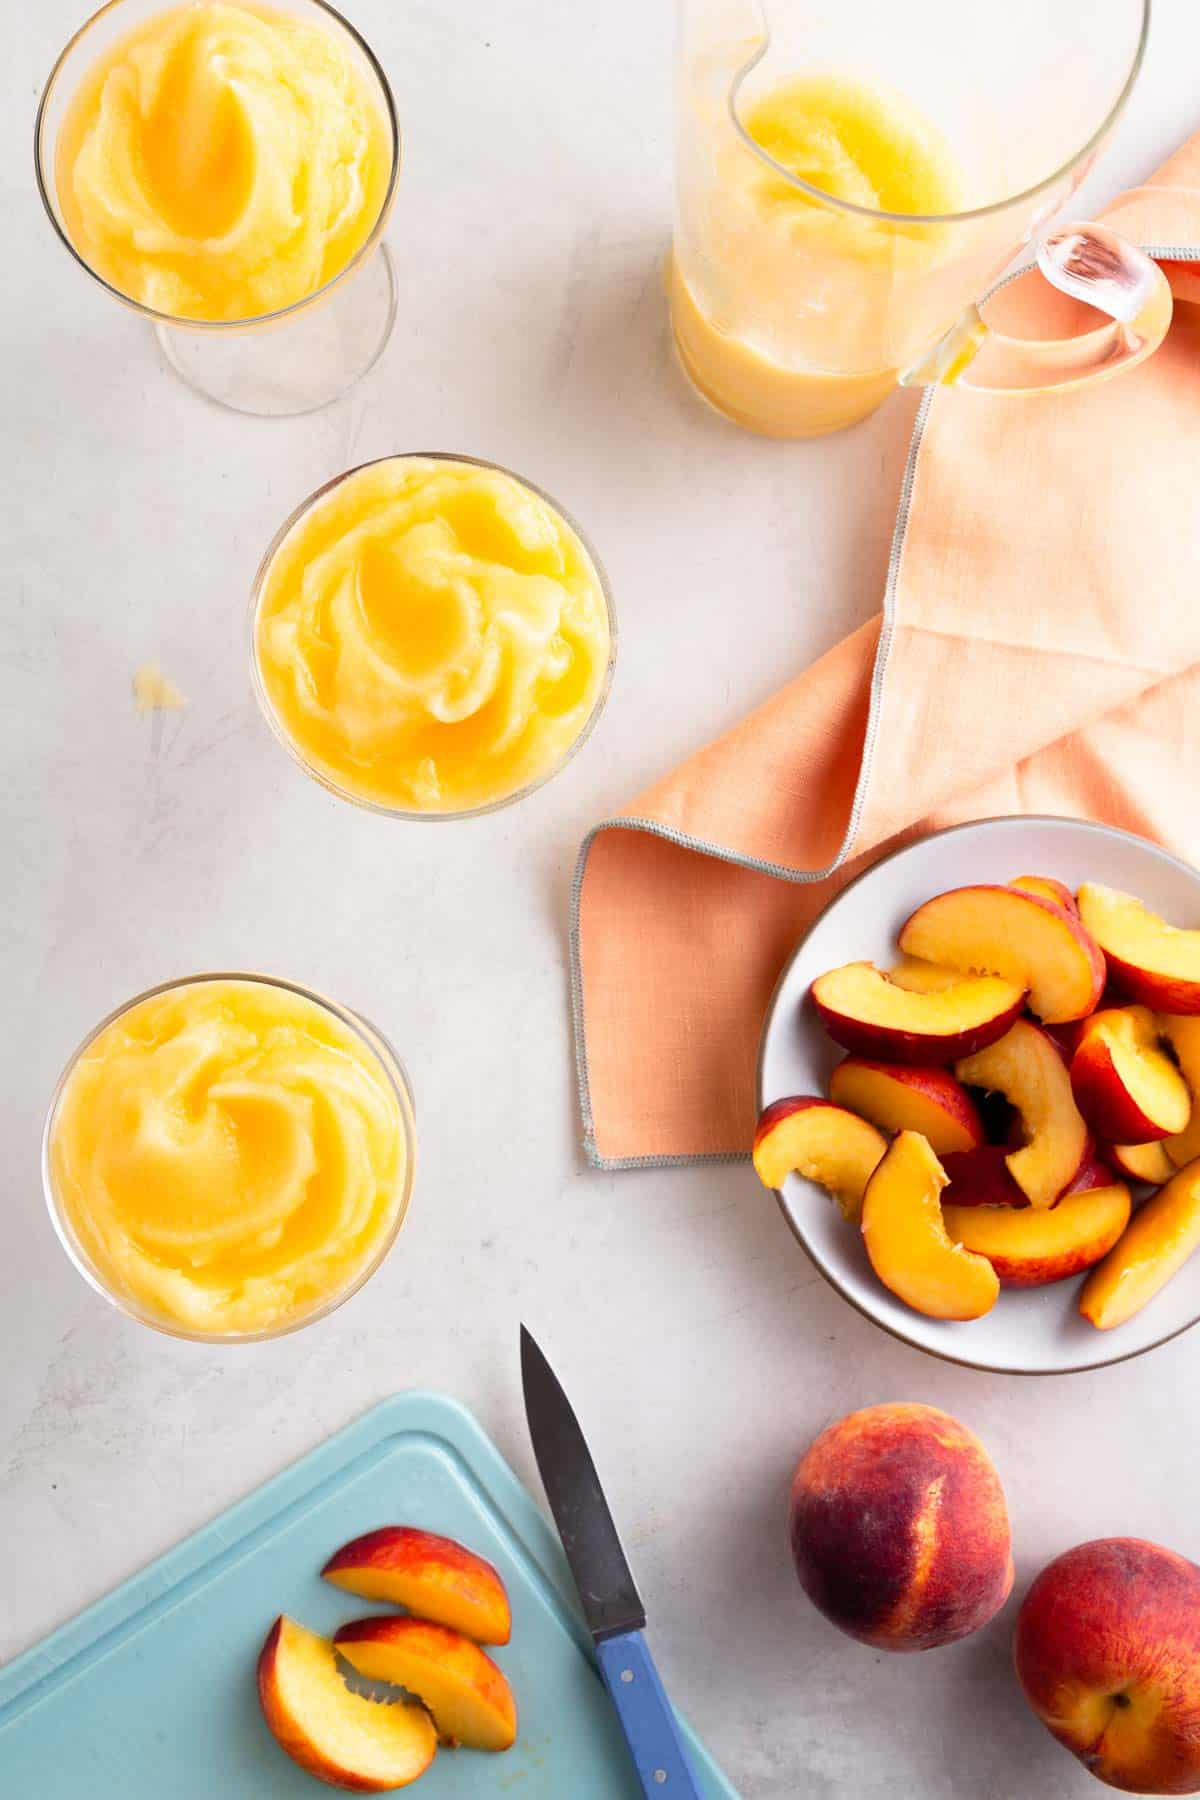 overhead view of 3 glasses filled with yellow slush next to a plate of sliced peaches